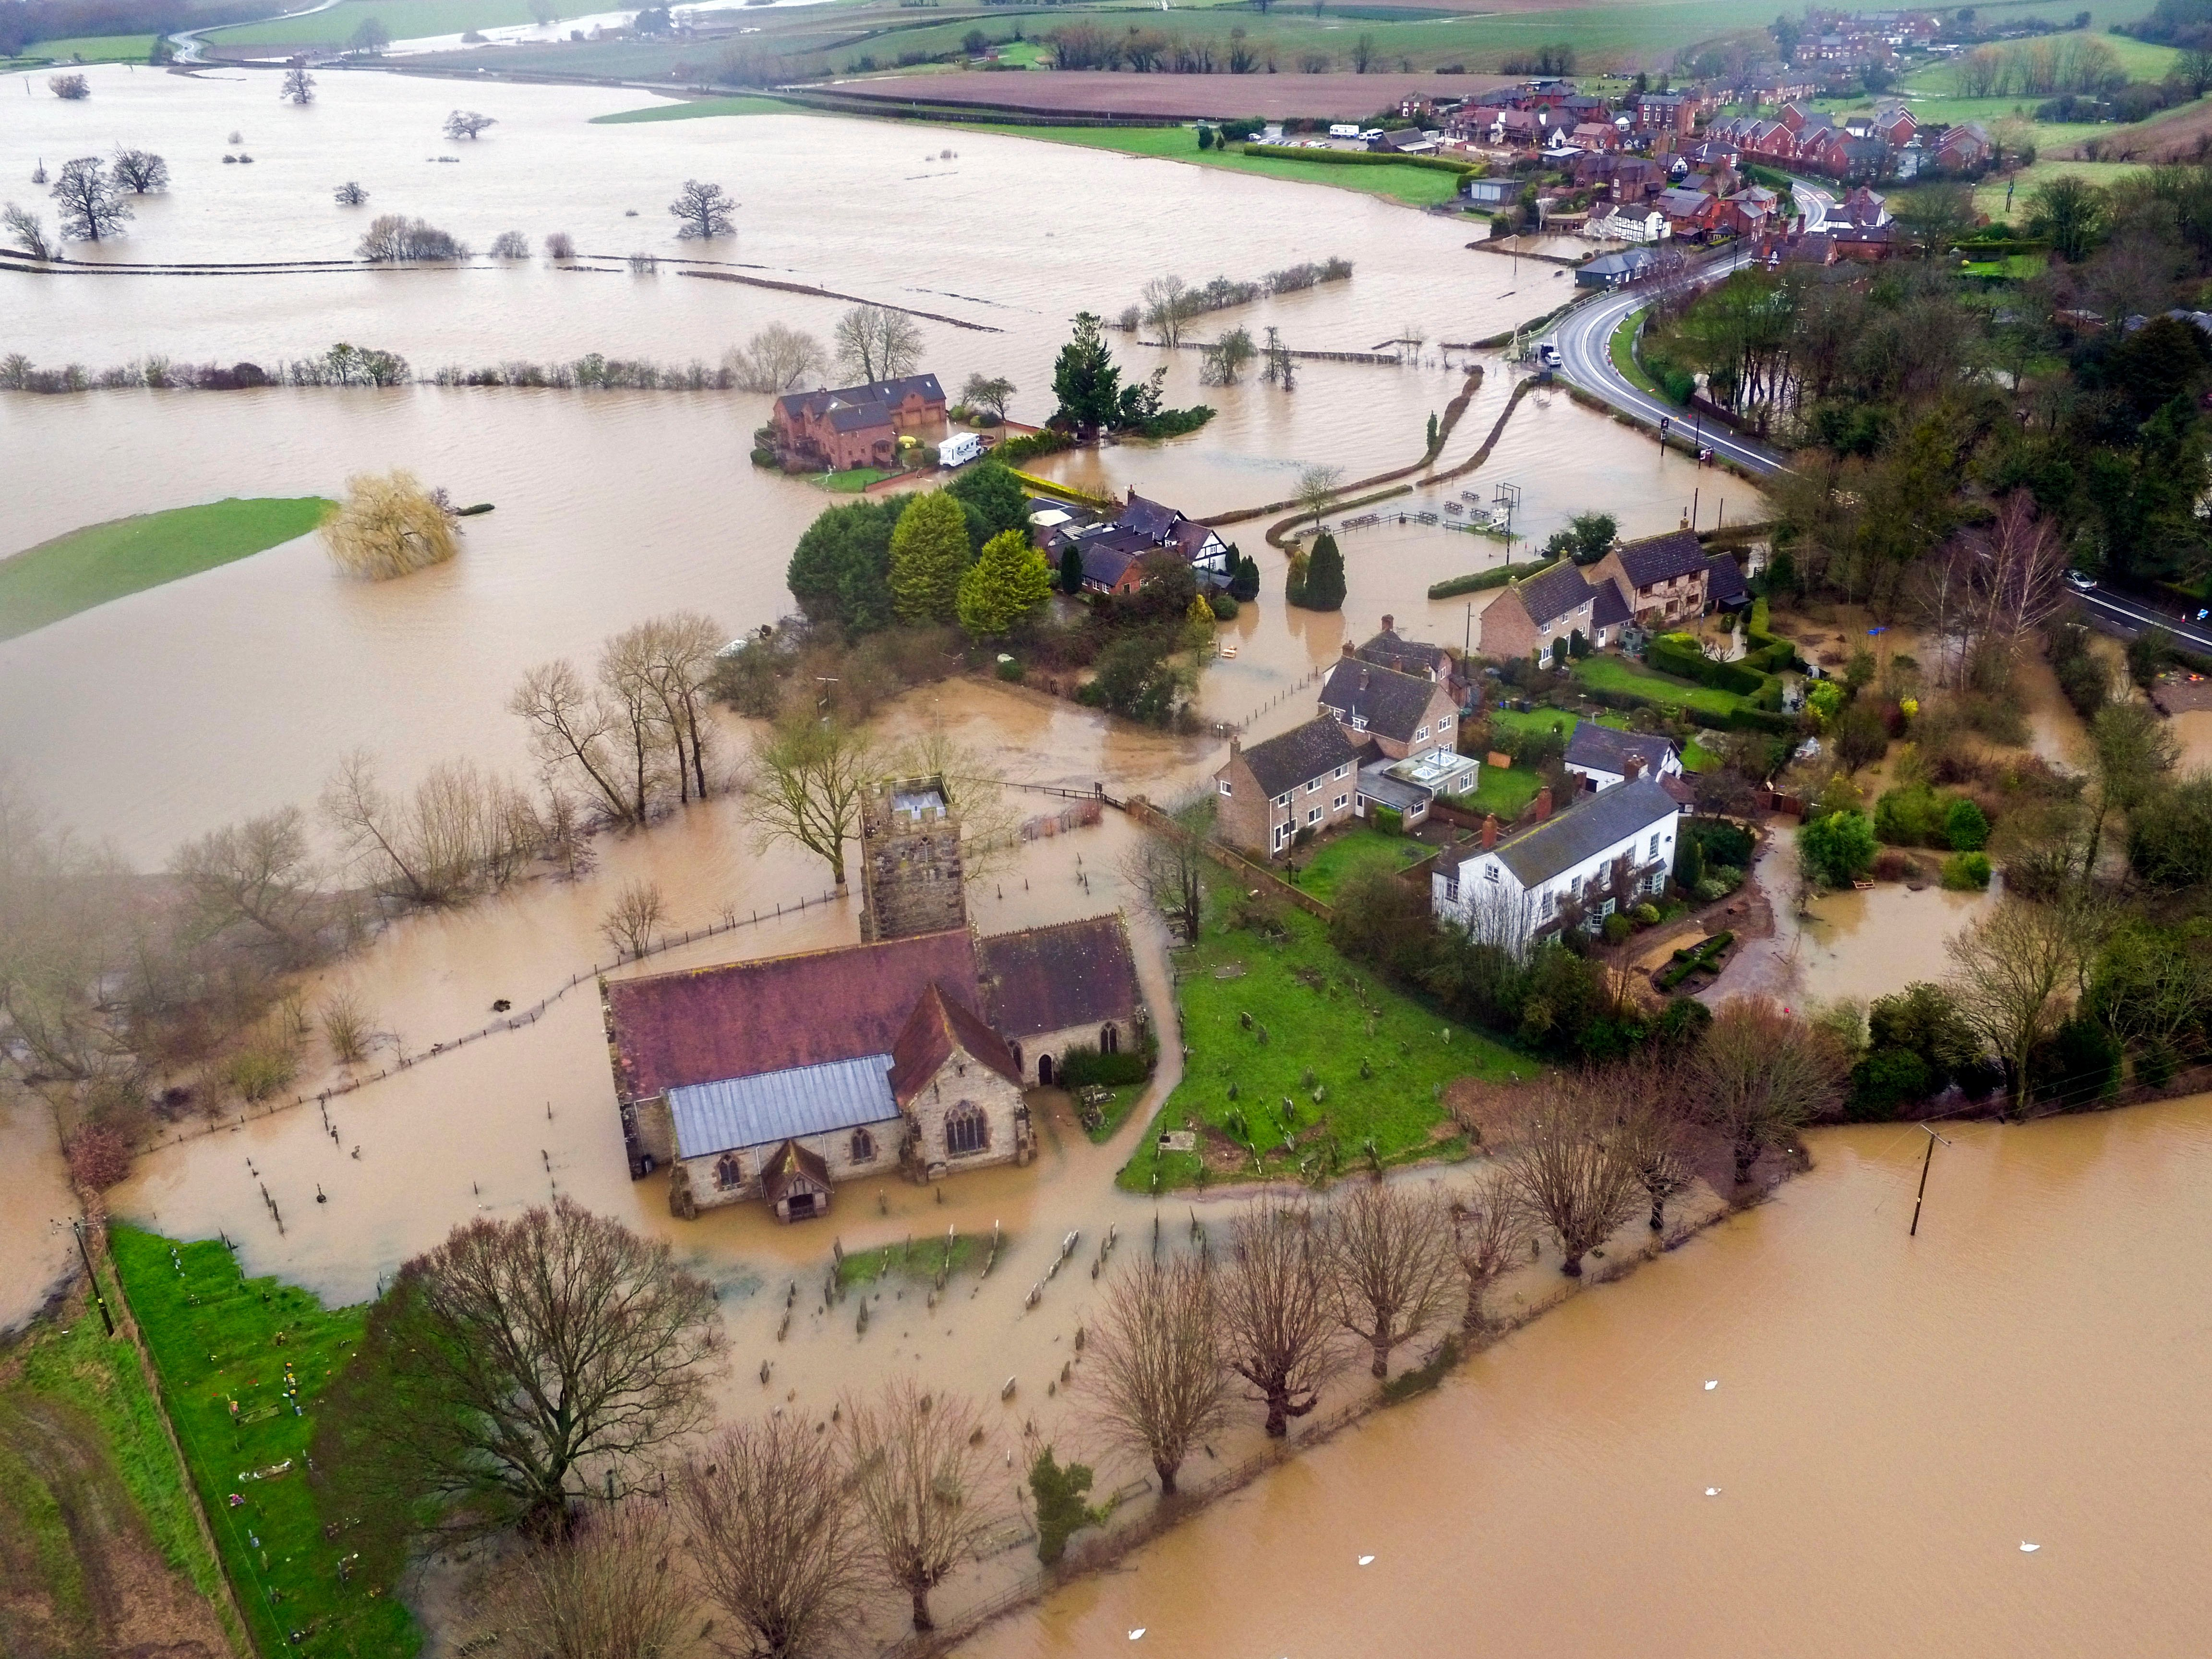 Flood water continues to surround Severn Stoke in Worcestershire, in the aftermath of Storm Dennis. (REUTERS Photo)